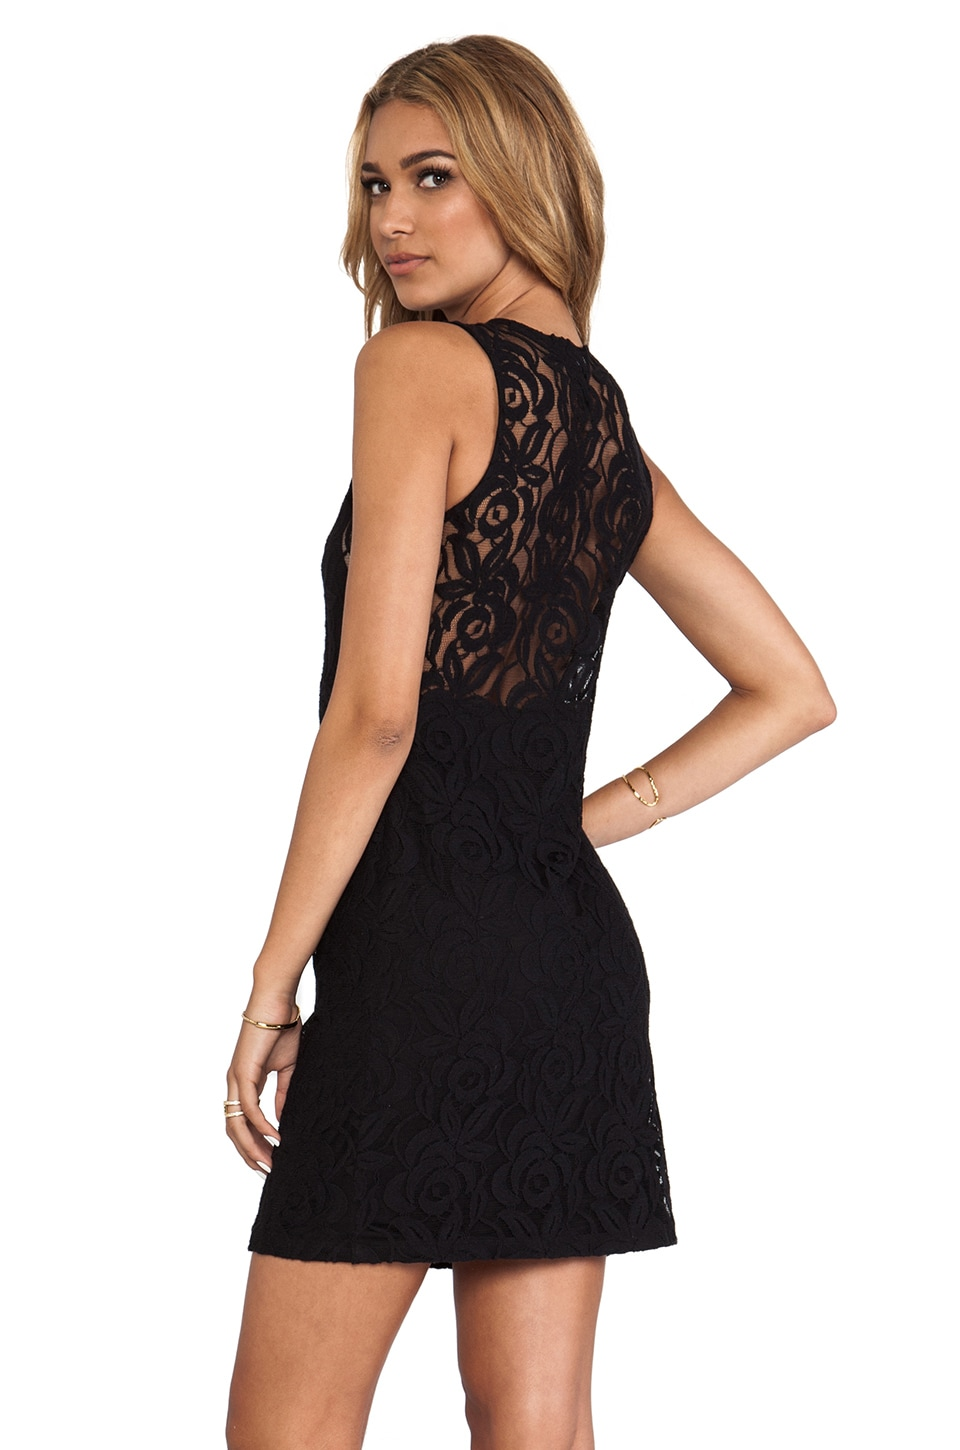 Central Park West Belize Dress in Black/Black